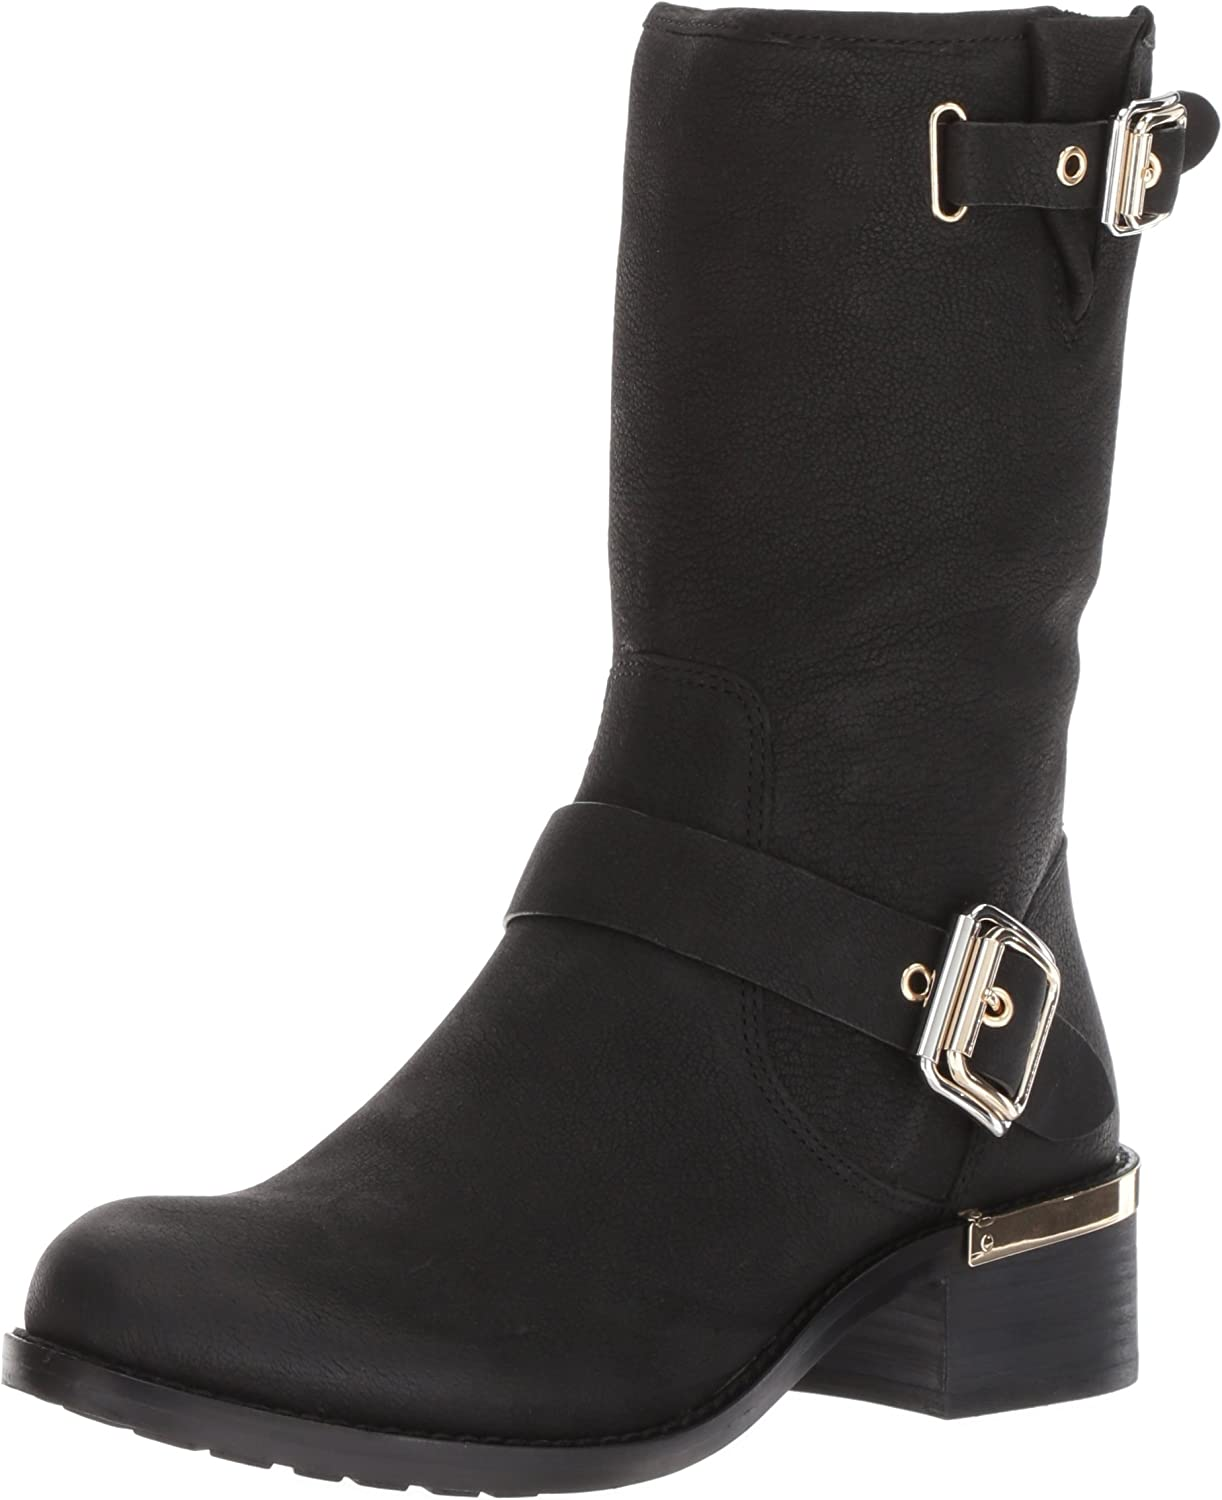 Vince Camuto Women's Windy Fashion Boots